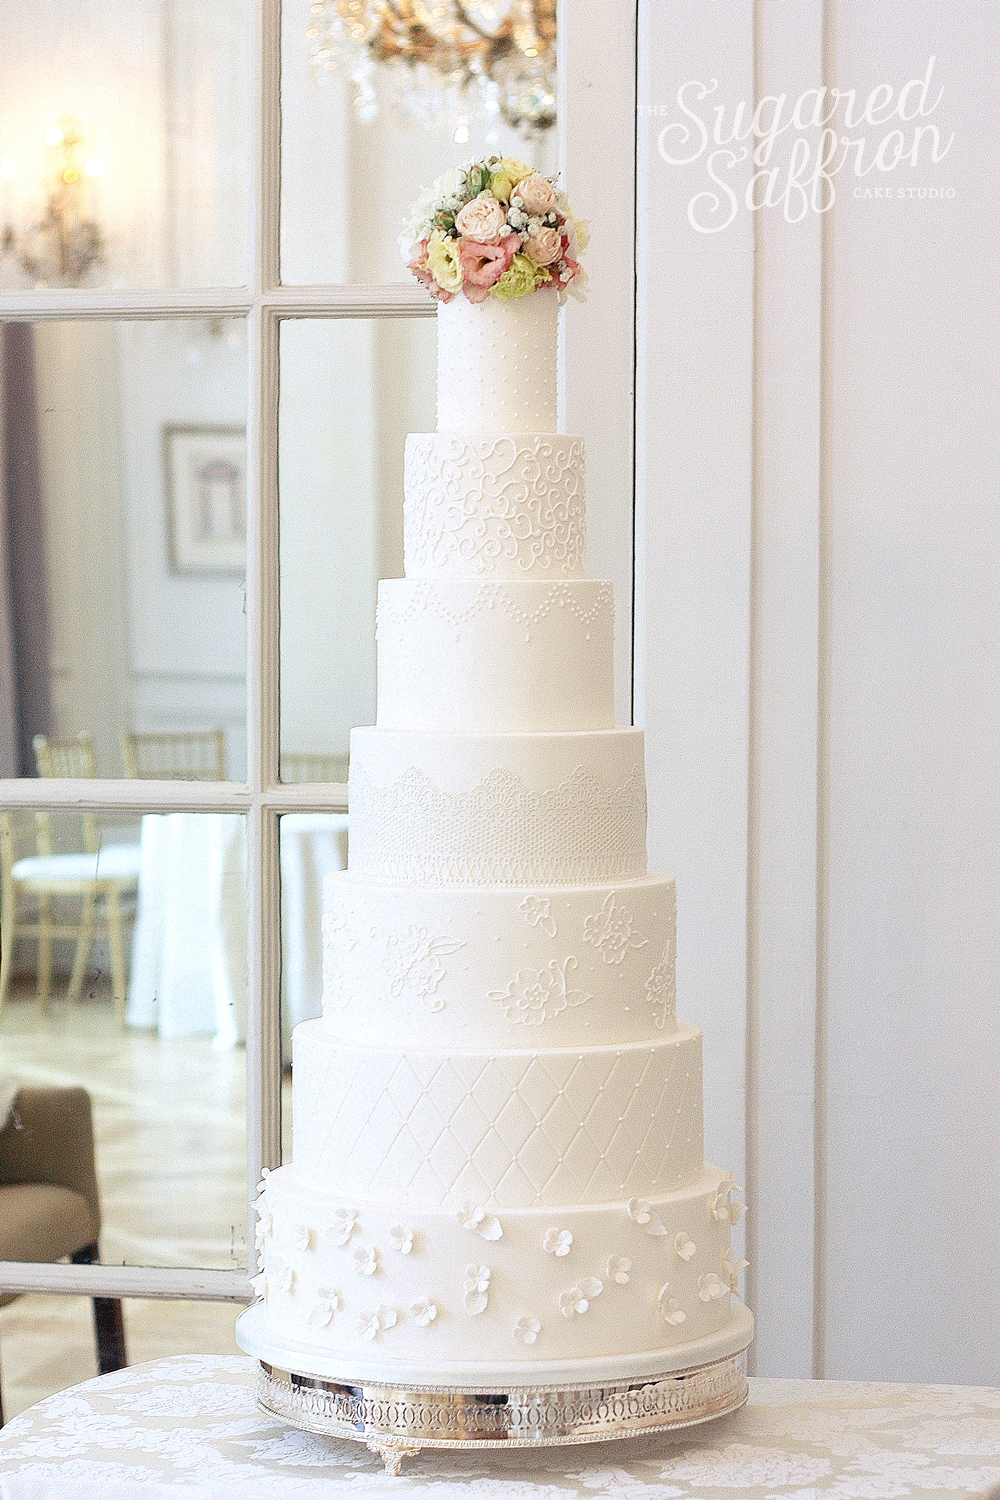 Tall luxury wedding cake in London